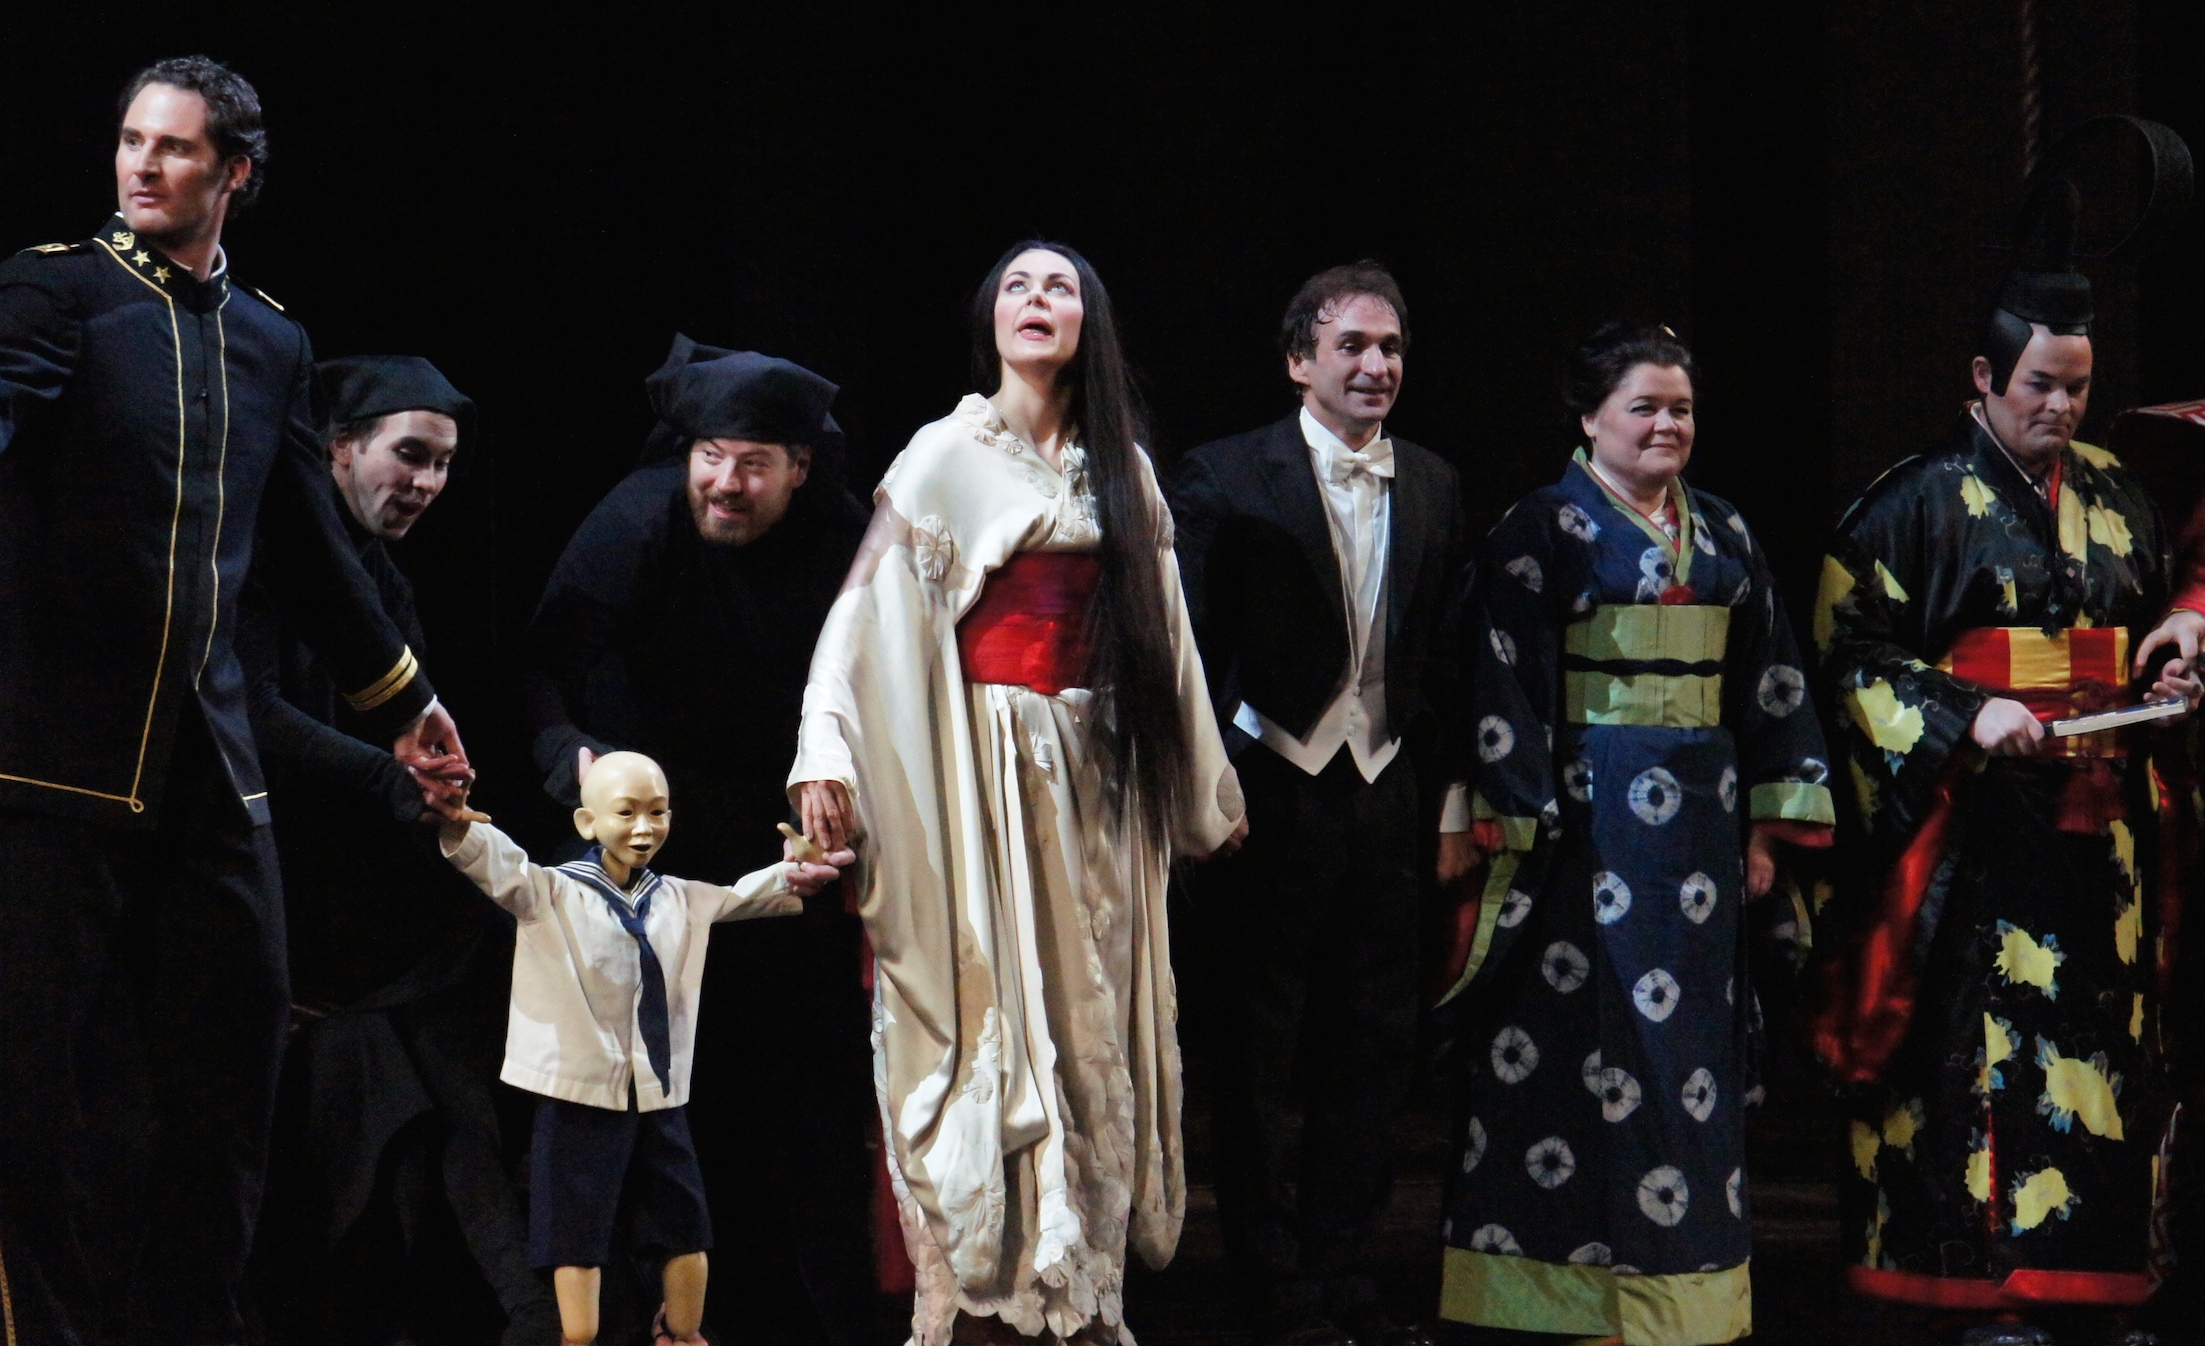 met opera madama butterfly 2014 review � simon parris